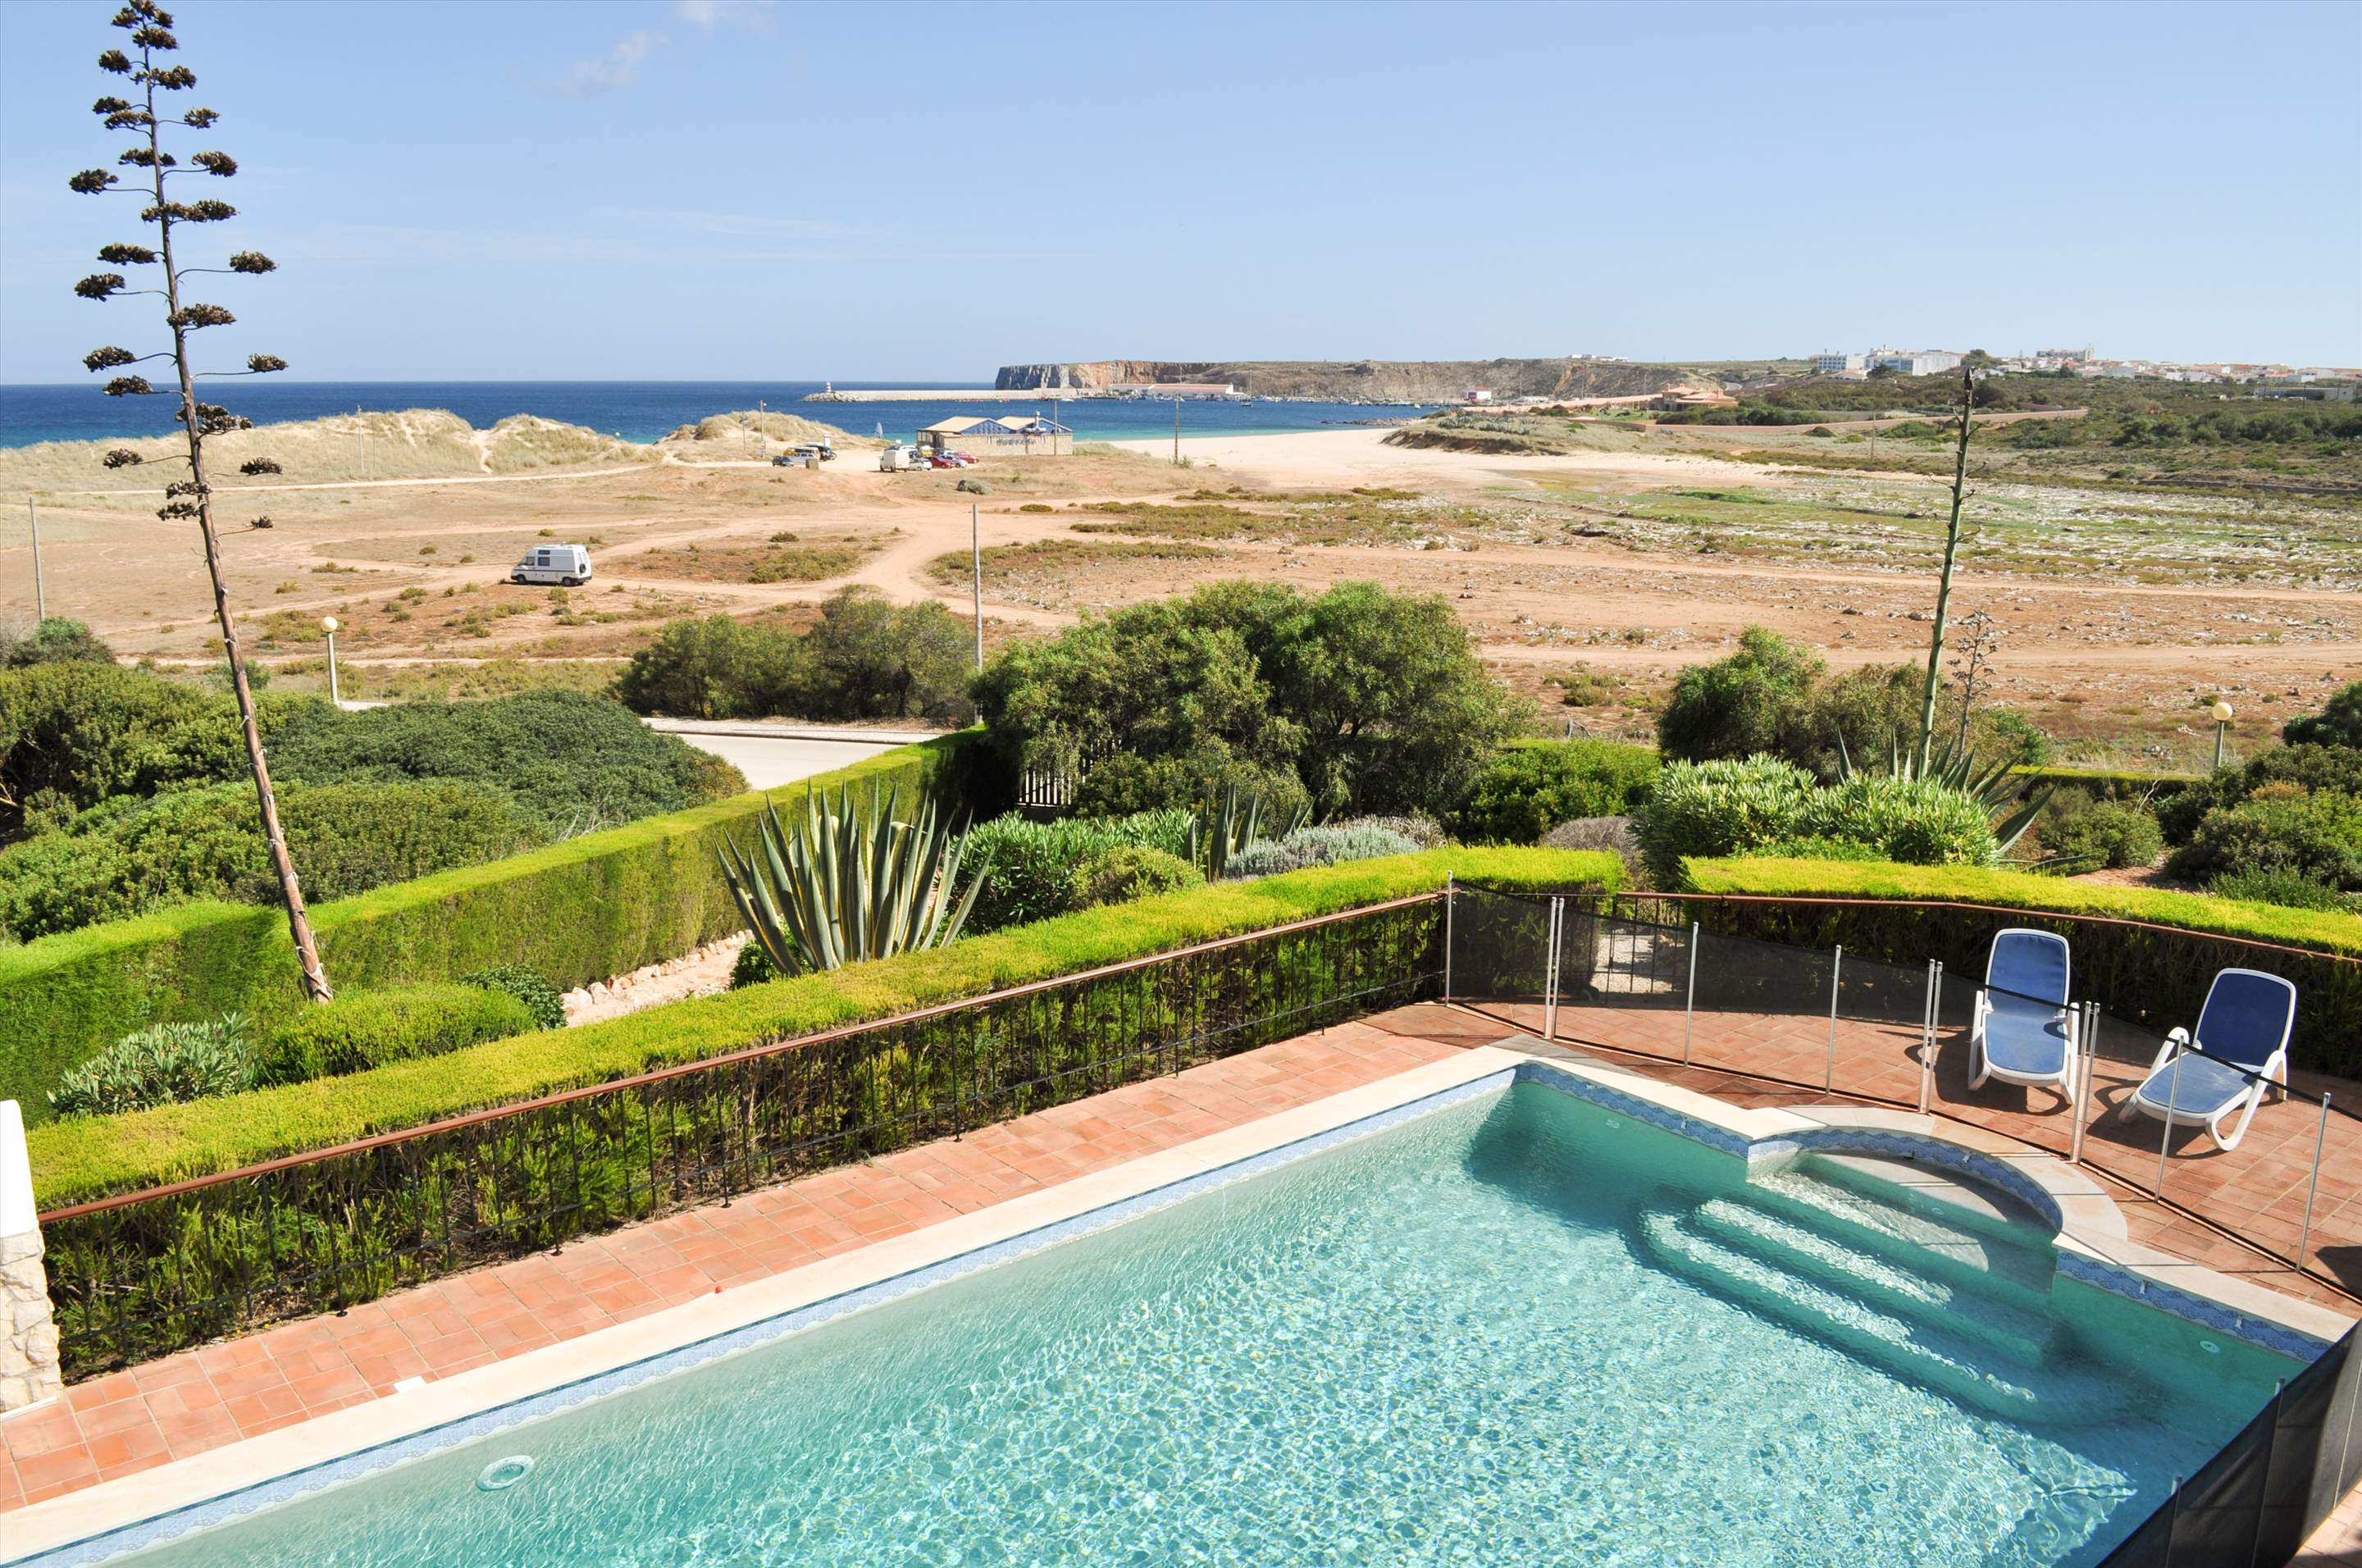 Martinhal Luxury Villa No.38, 3 bedroom villa in Martinhal Sagres, Algarve